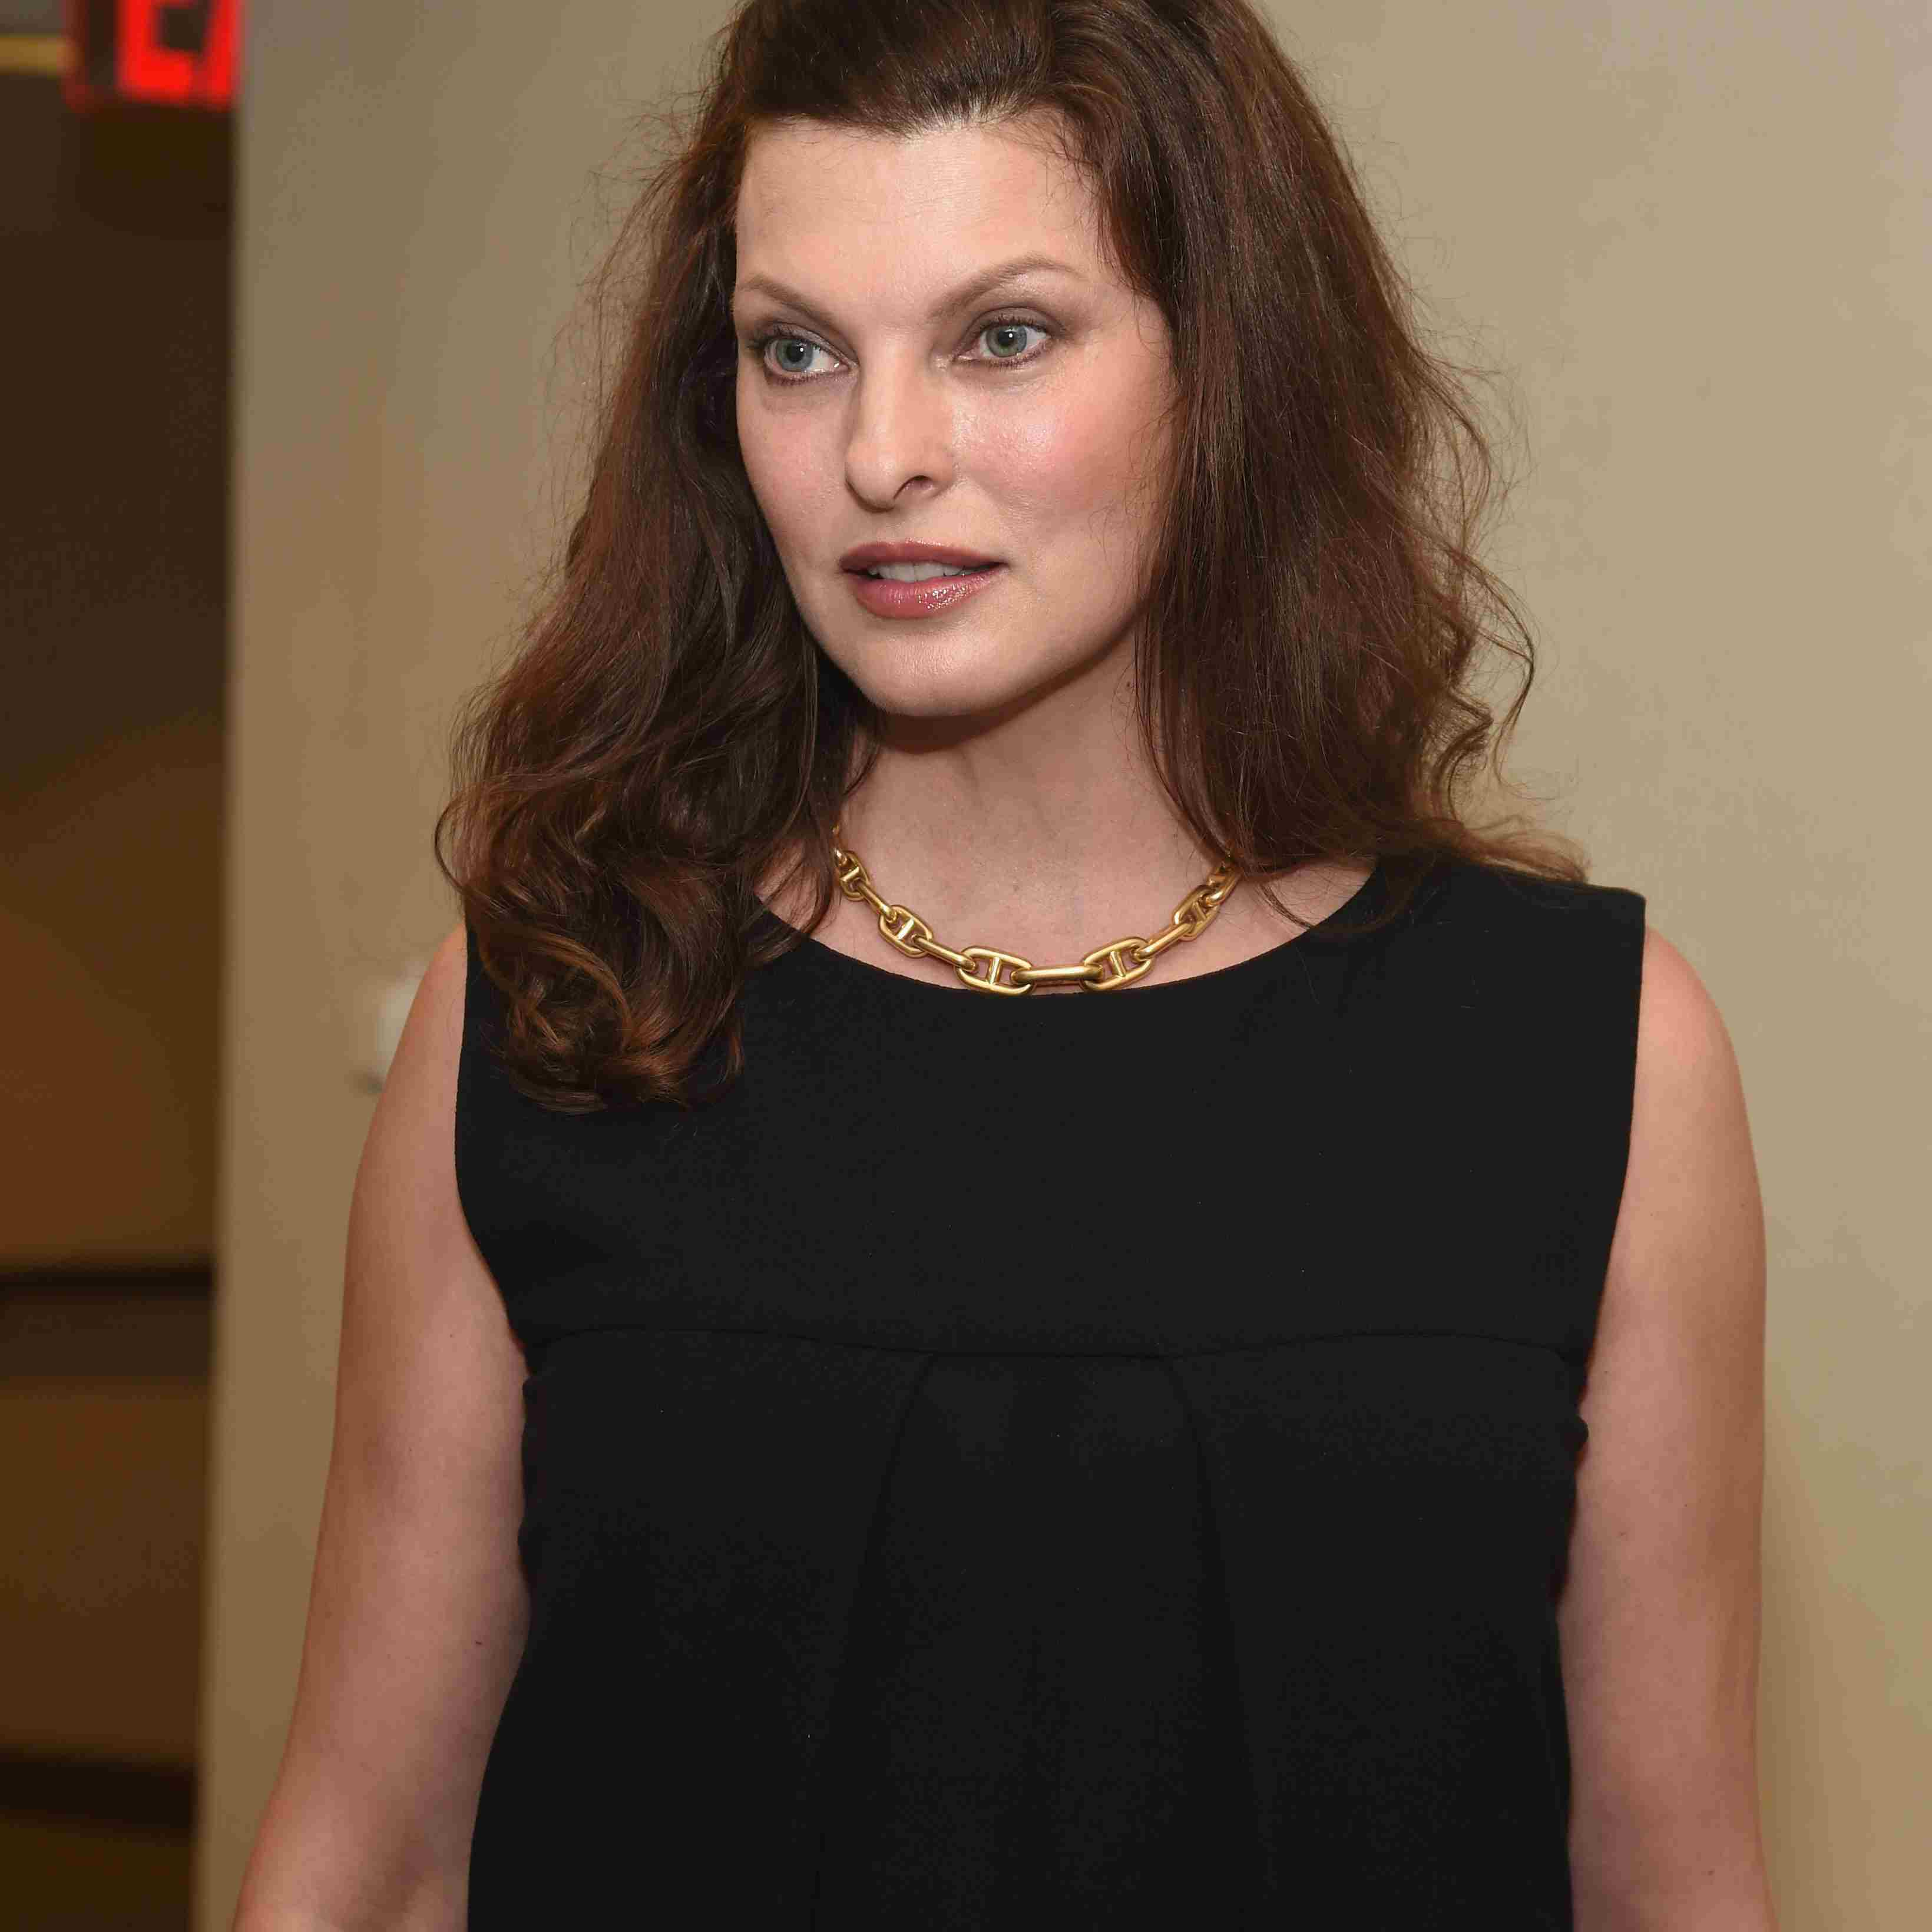 Model Linda Evangelista attends Annual Charity Day Hosted by Cantor Fitzgerald and BGC at BGC Partners, INC on September 11, 2014 in New York City.